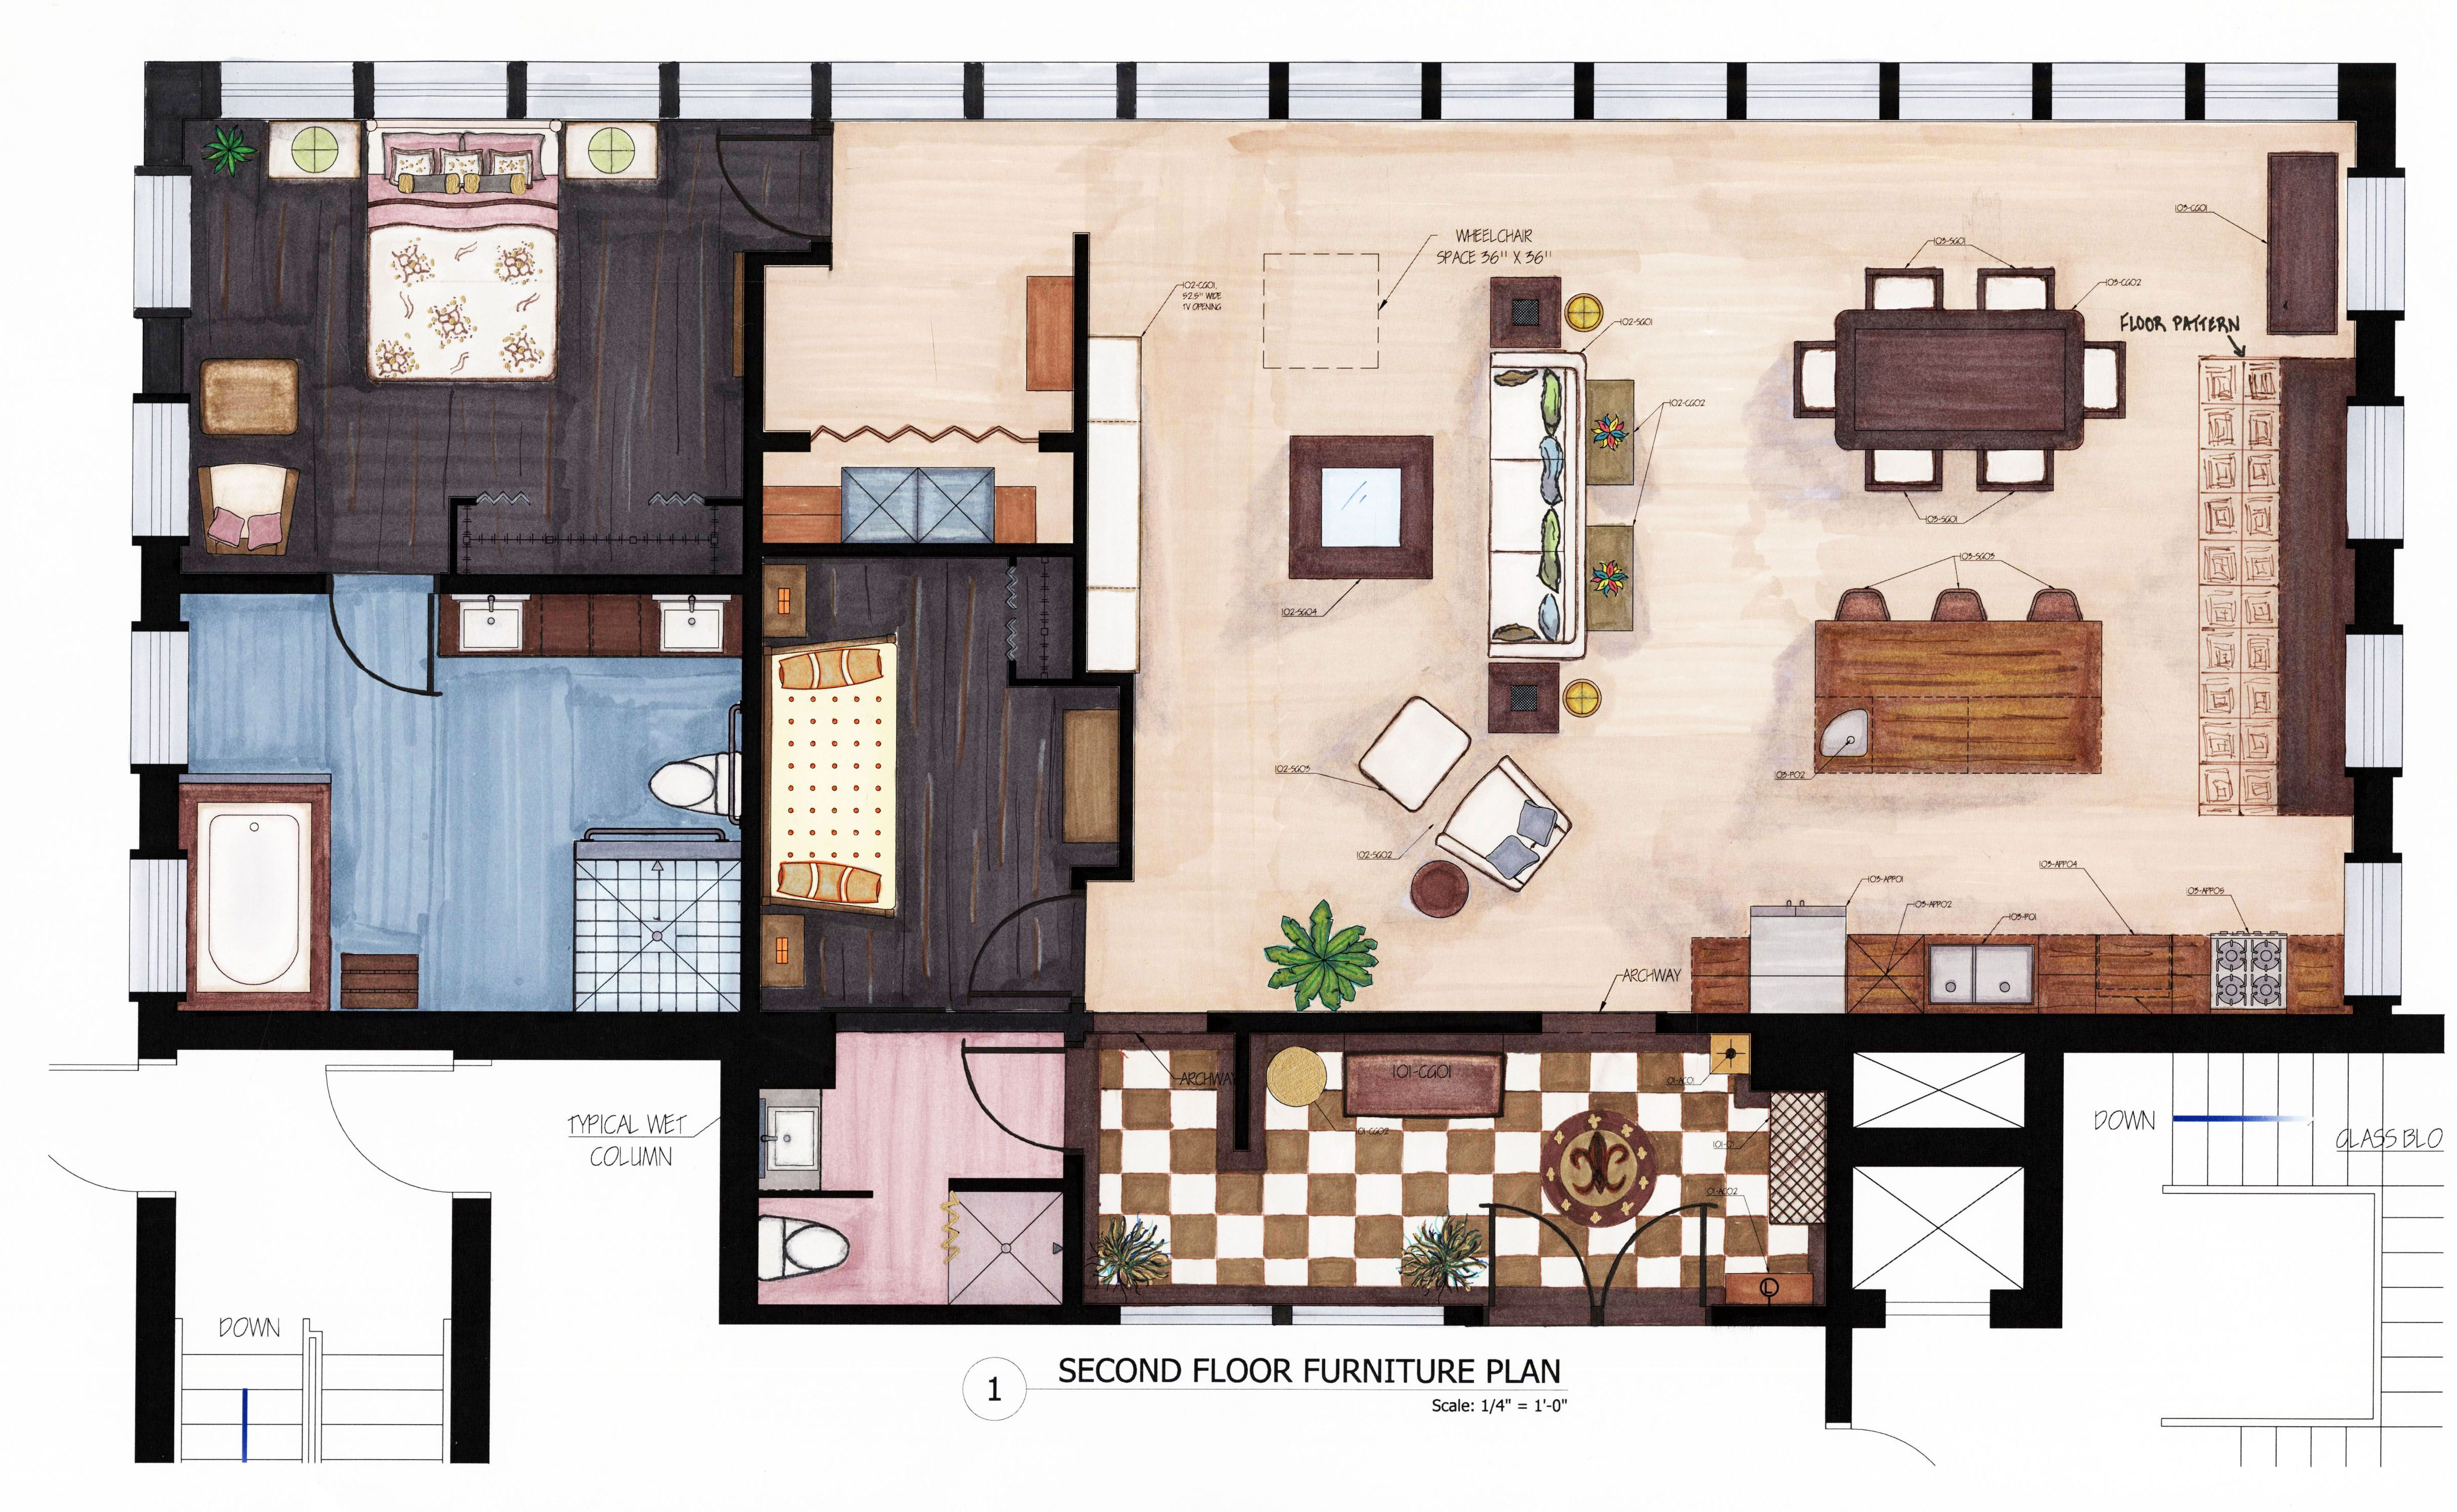 Rendered Floor Plan AutoCad This is a furniture plan I created